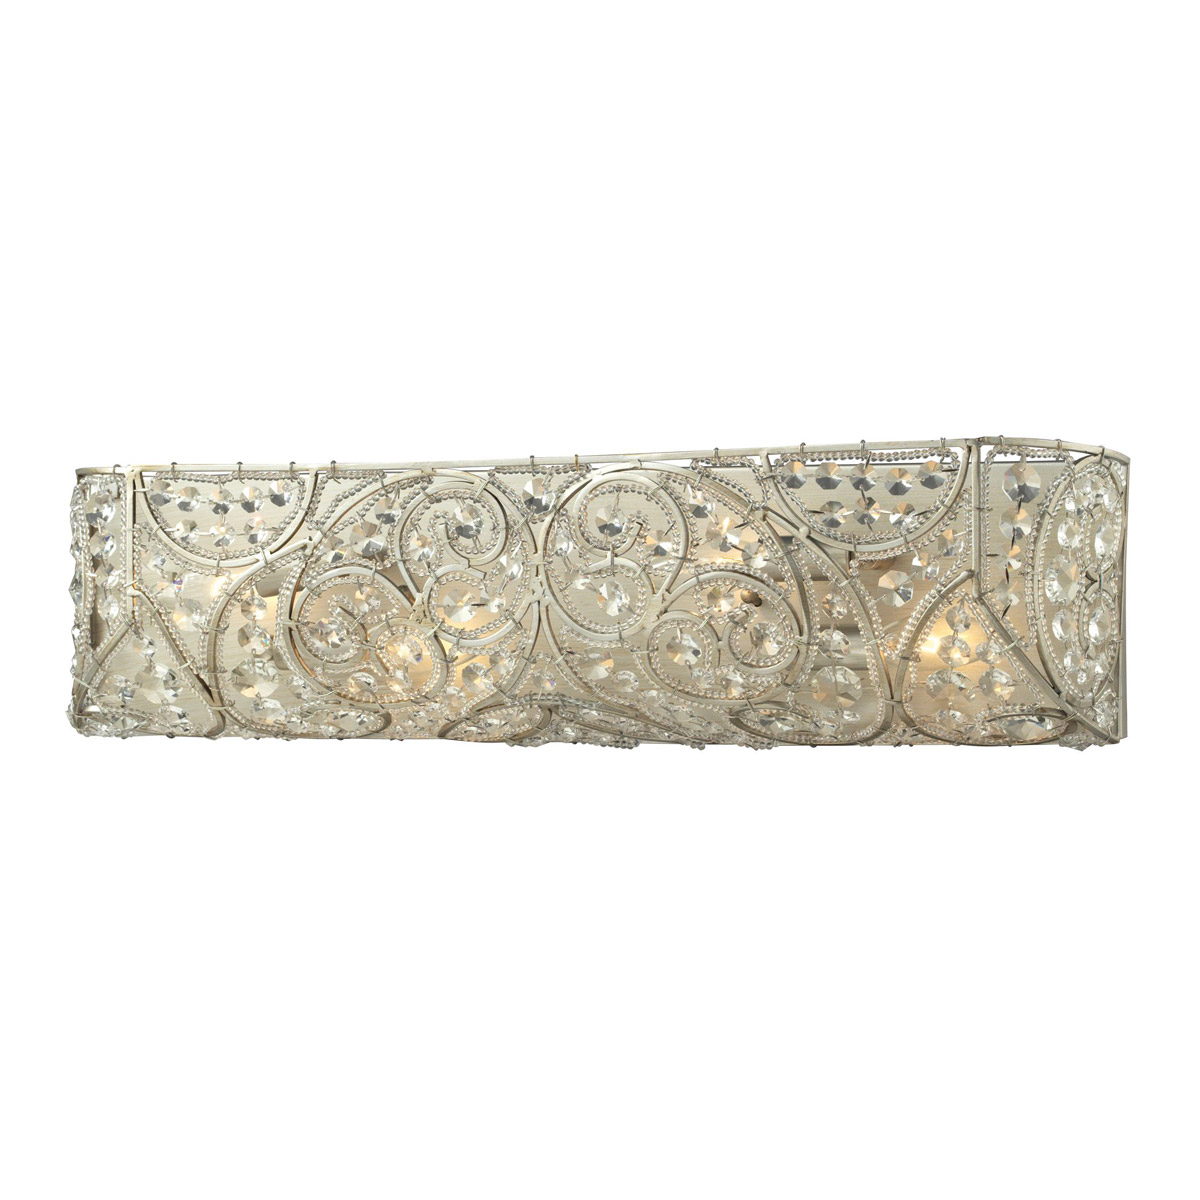 ELK Lighting Andalusia 116914 Candle Sconces for Walls Brooklyn, New York - Accentuations Brand